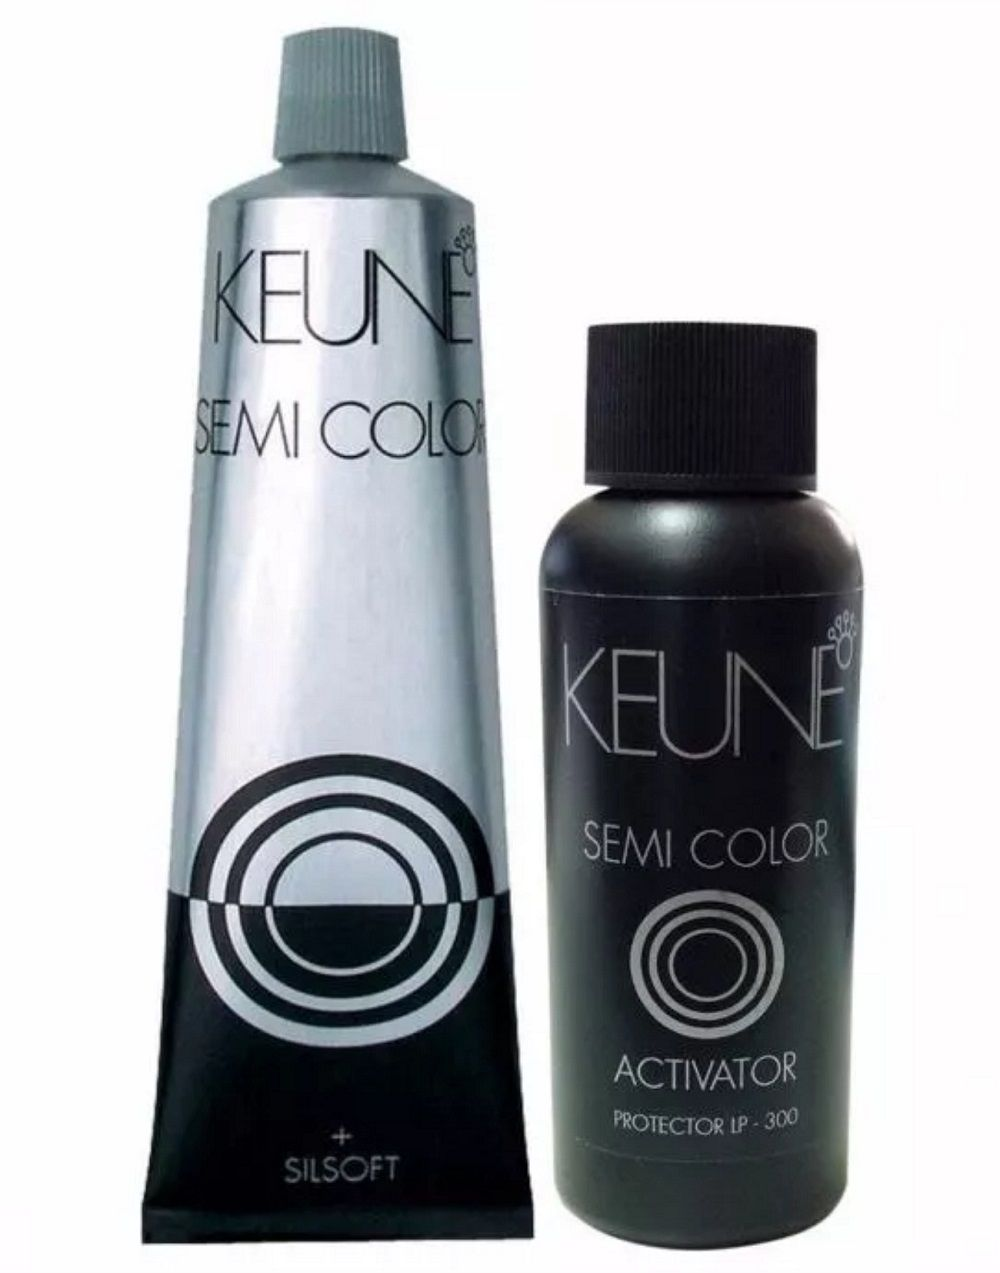 Kit Keune Semi Color 60ml - Cor 10.7 - Louro Extra Claro Violeta + Ativador 60ml